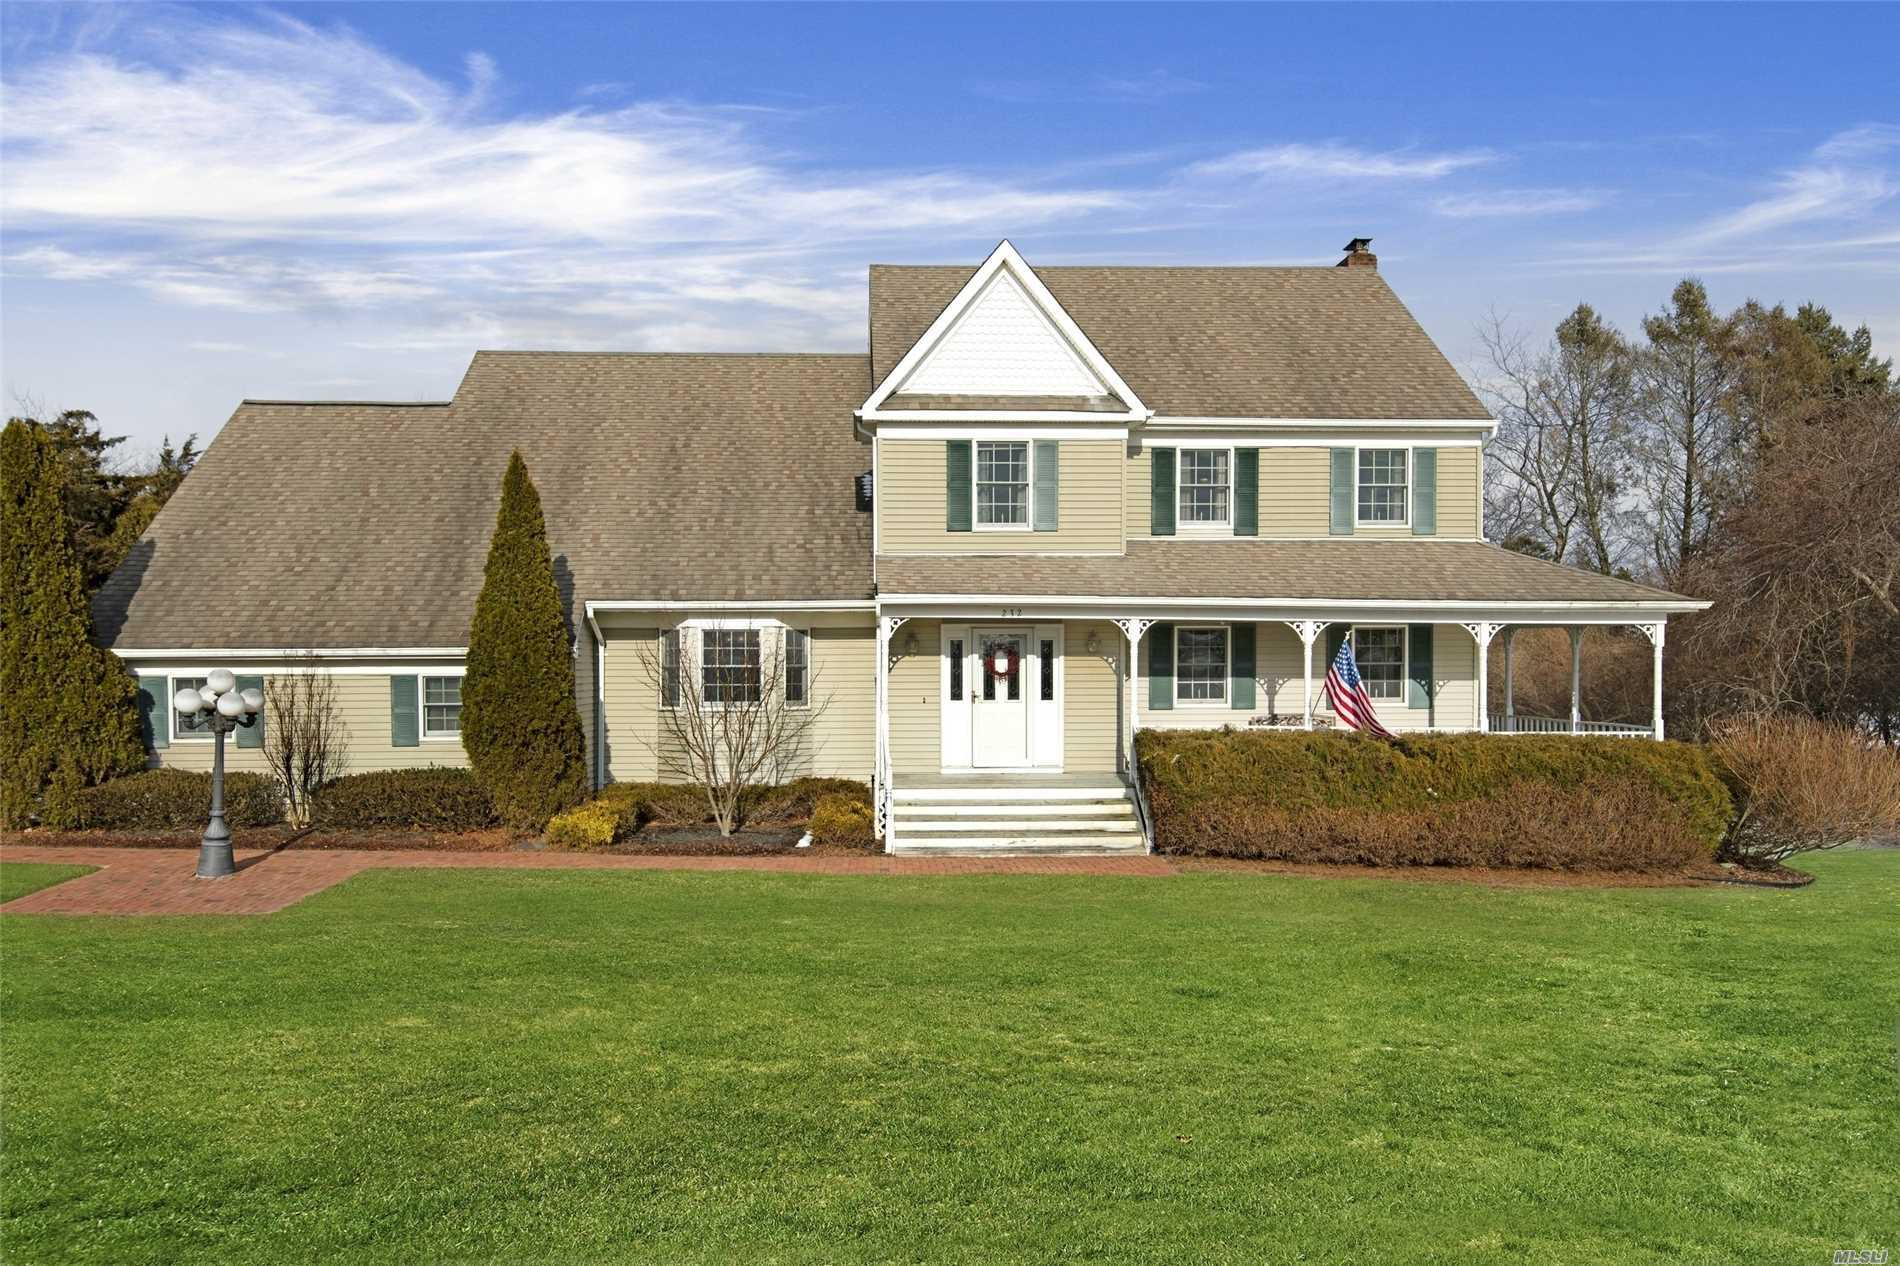 Enjoy North Fork Living From This Traditional, 4 Bedroom, 2.5 Bath Colonial On Over One Acre Of Manicured Grounds With A Wrap-Around Porch, Deck, Heated In-Ground Pool, Custom Kitchen, Wood Burning Fireplace And Hardwood Floors In A Very Quiet Neighborhood. Close to all the North Fork has to Offer!